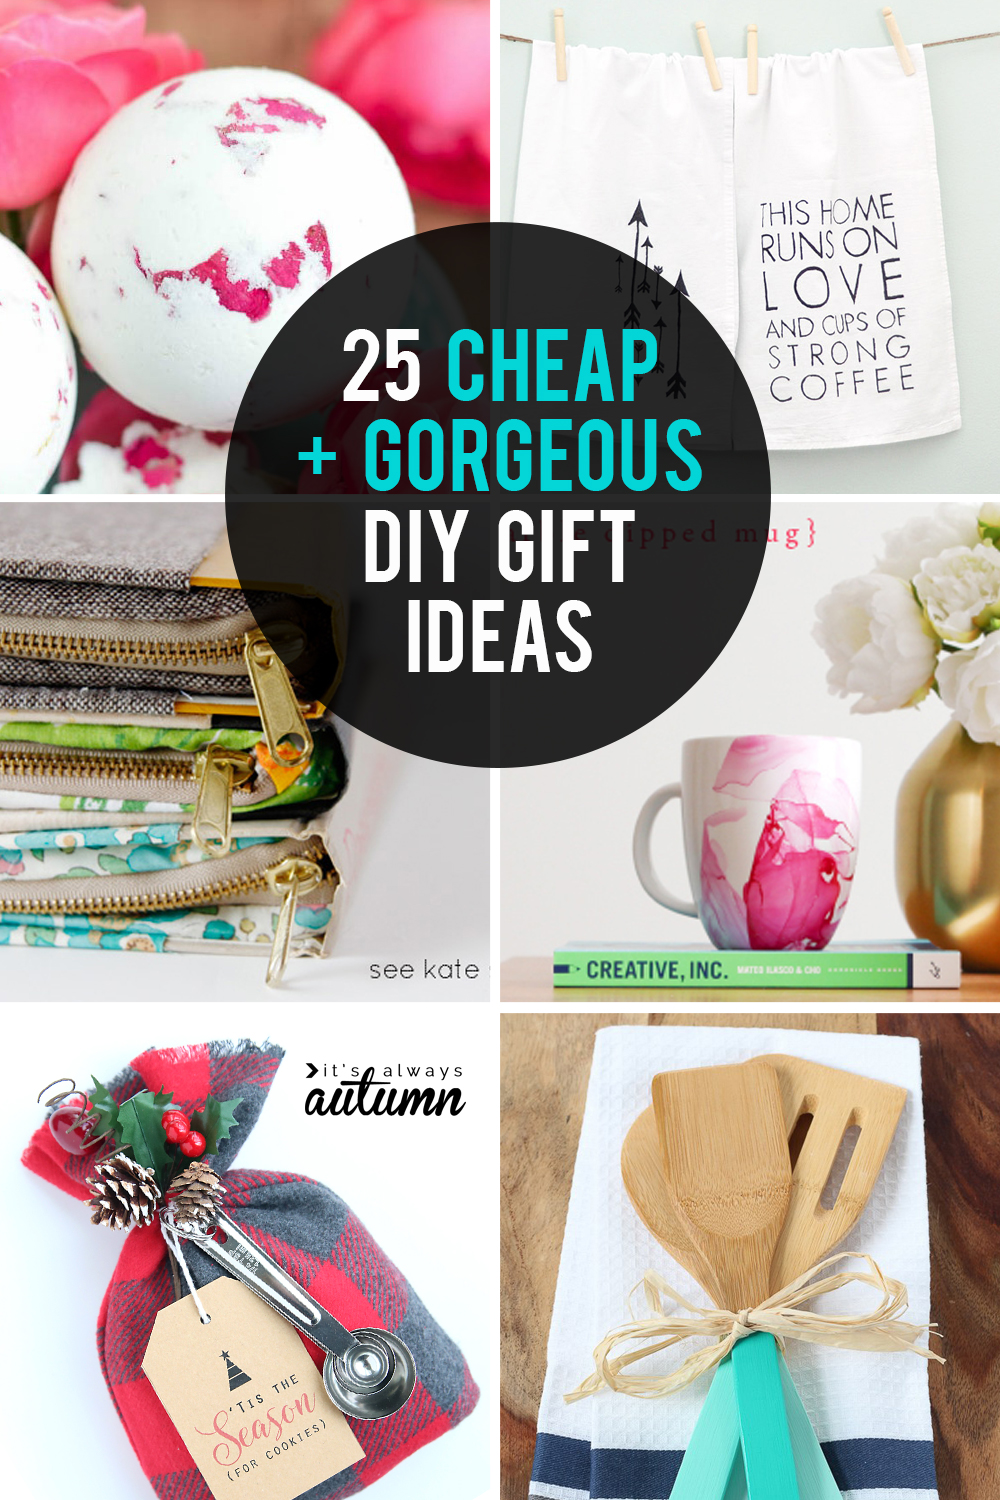 These DIY gifts ideas are cheap AND gorgeous! Great homemade gift ideas for Christmas, birthdays, Mother's Day and more.